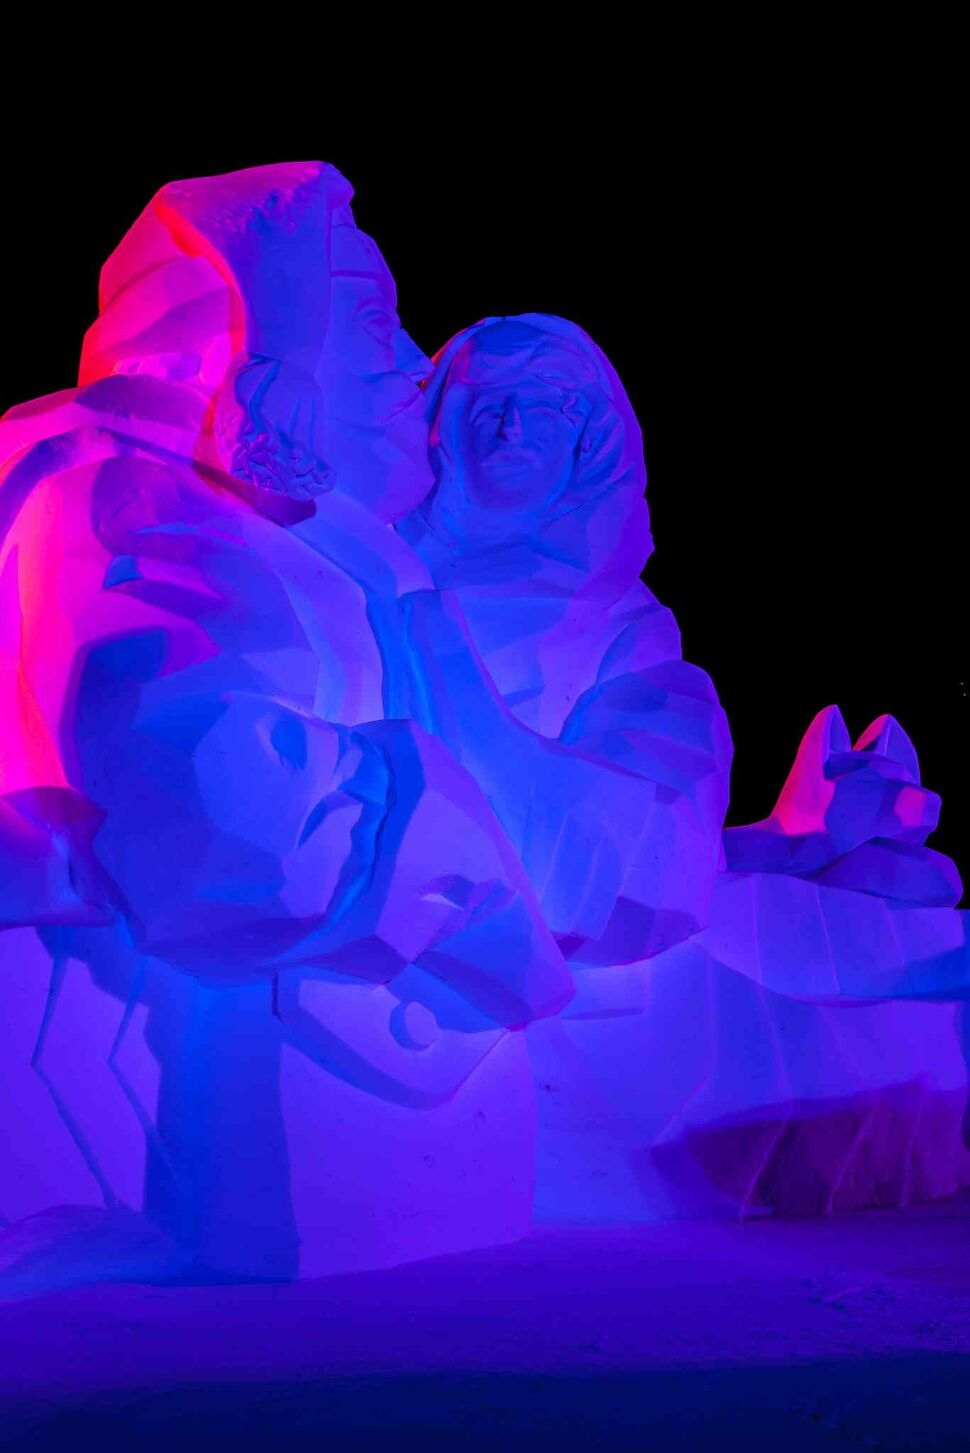 One of many majestic ice and snow sculptures on display at this year's Festival du Voyageur. (GREG GALLINGER / WINNIPEG FREE PRESS)